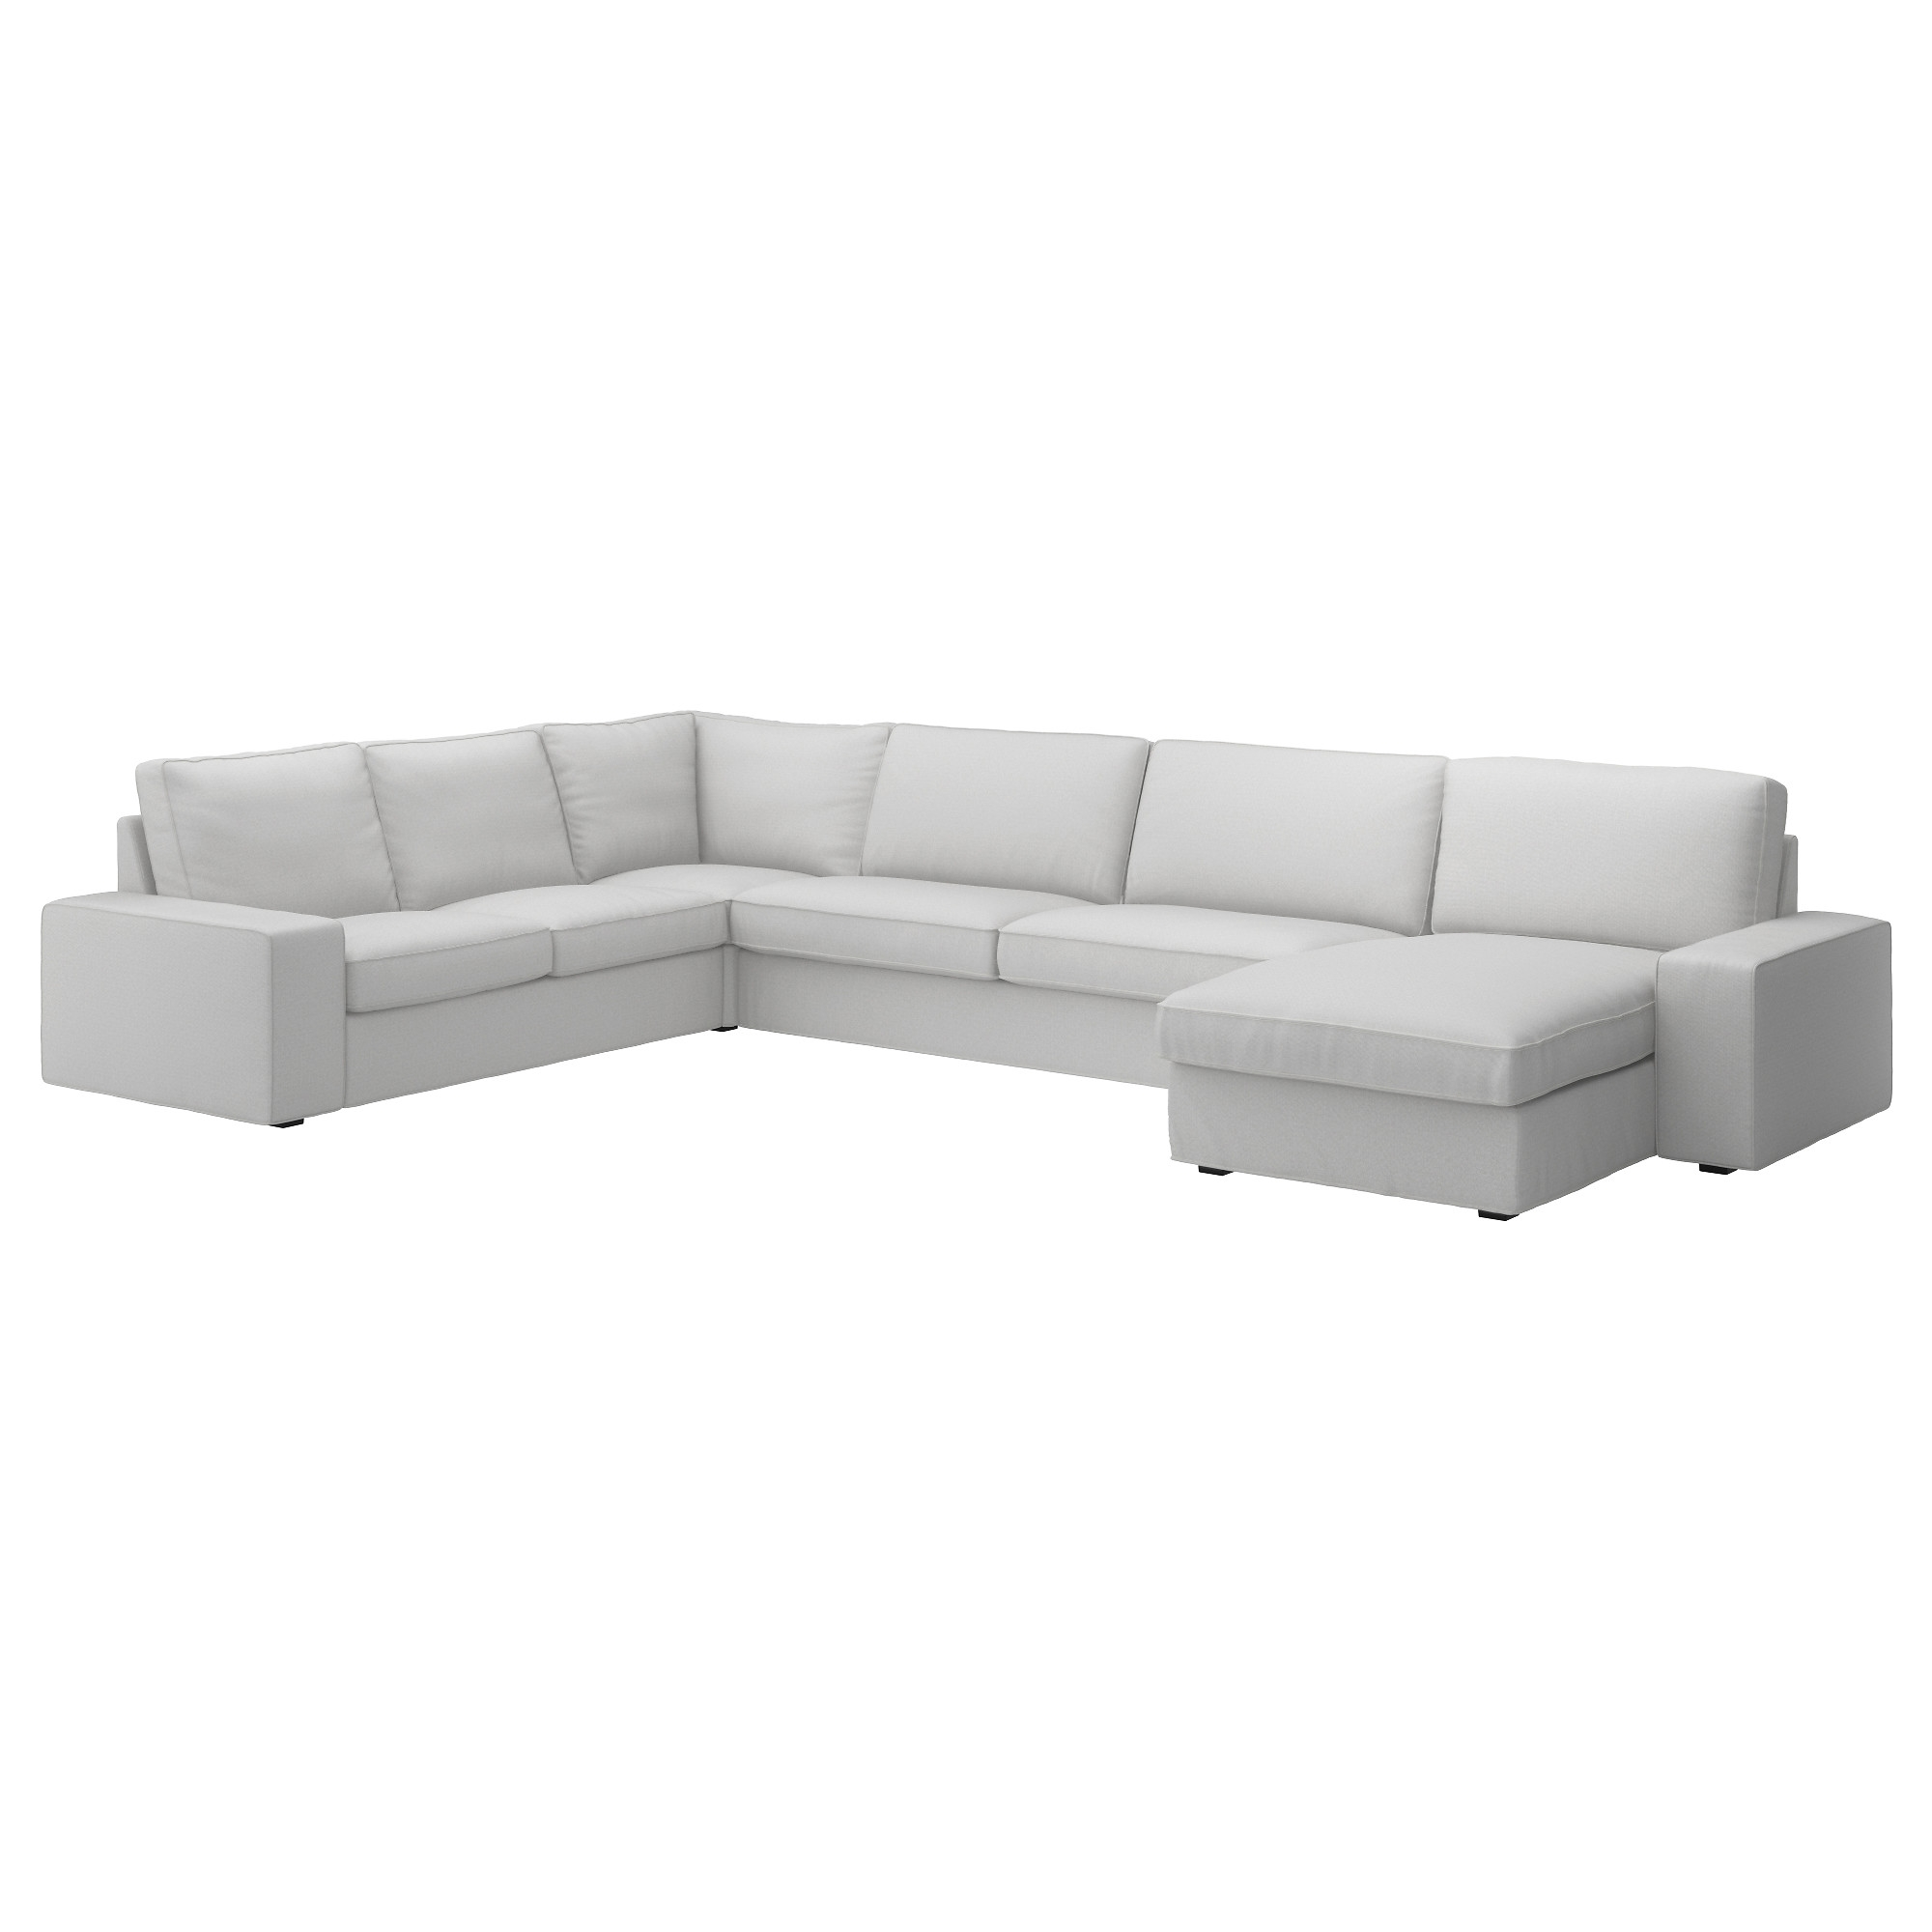 KIVIK sofa 7 seats and chaise longue with ORRSTA light grey cover on pillow sofa, storage sofa, lounge sofa, recliner sofa, bedroom sofa, ottoman sofa, bench sofa, beds sofa, art sofa, bookcase sofa, cushions sofa, futon sofa, mattress sofa, table sofa, glider sofa, settee sofa, divan sofa, couch sofa, fabric sofa, chair sofa,